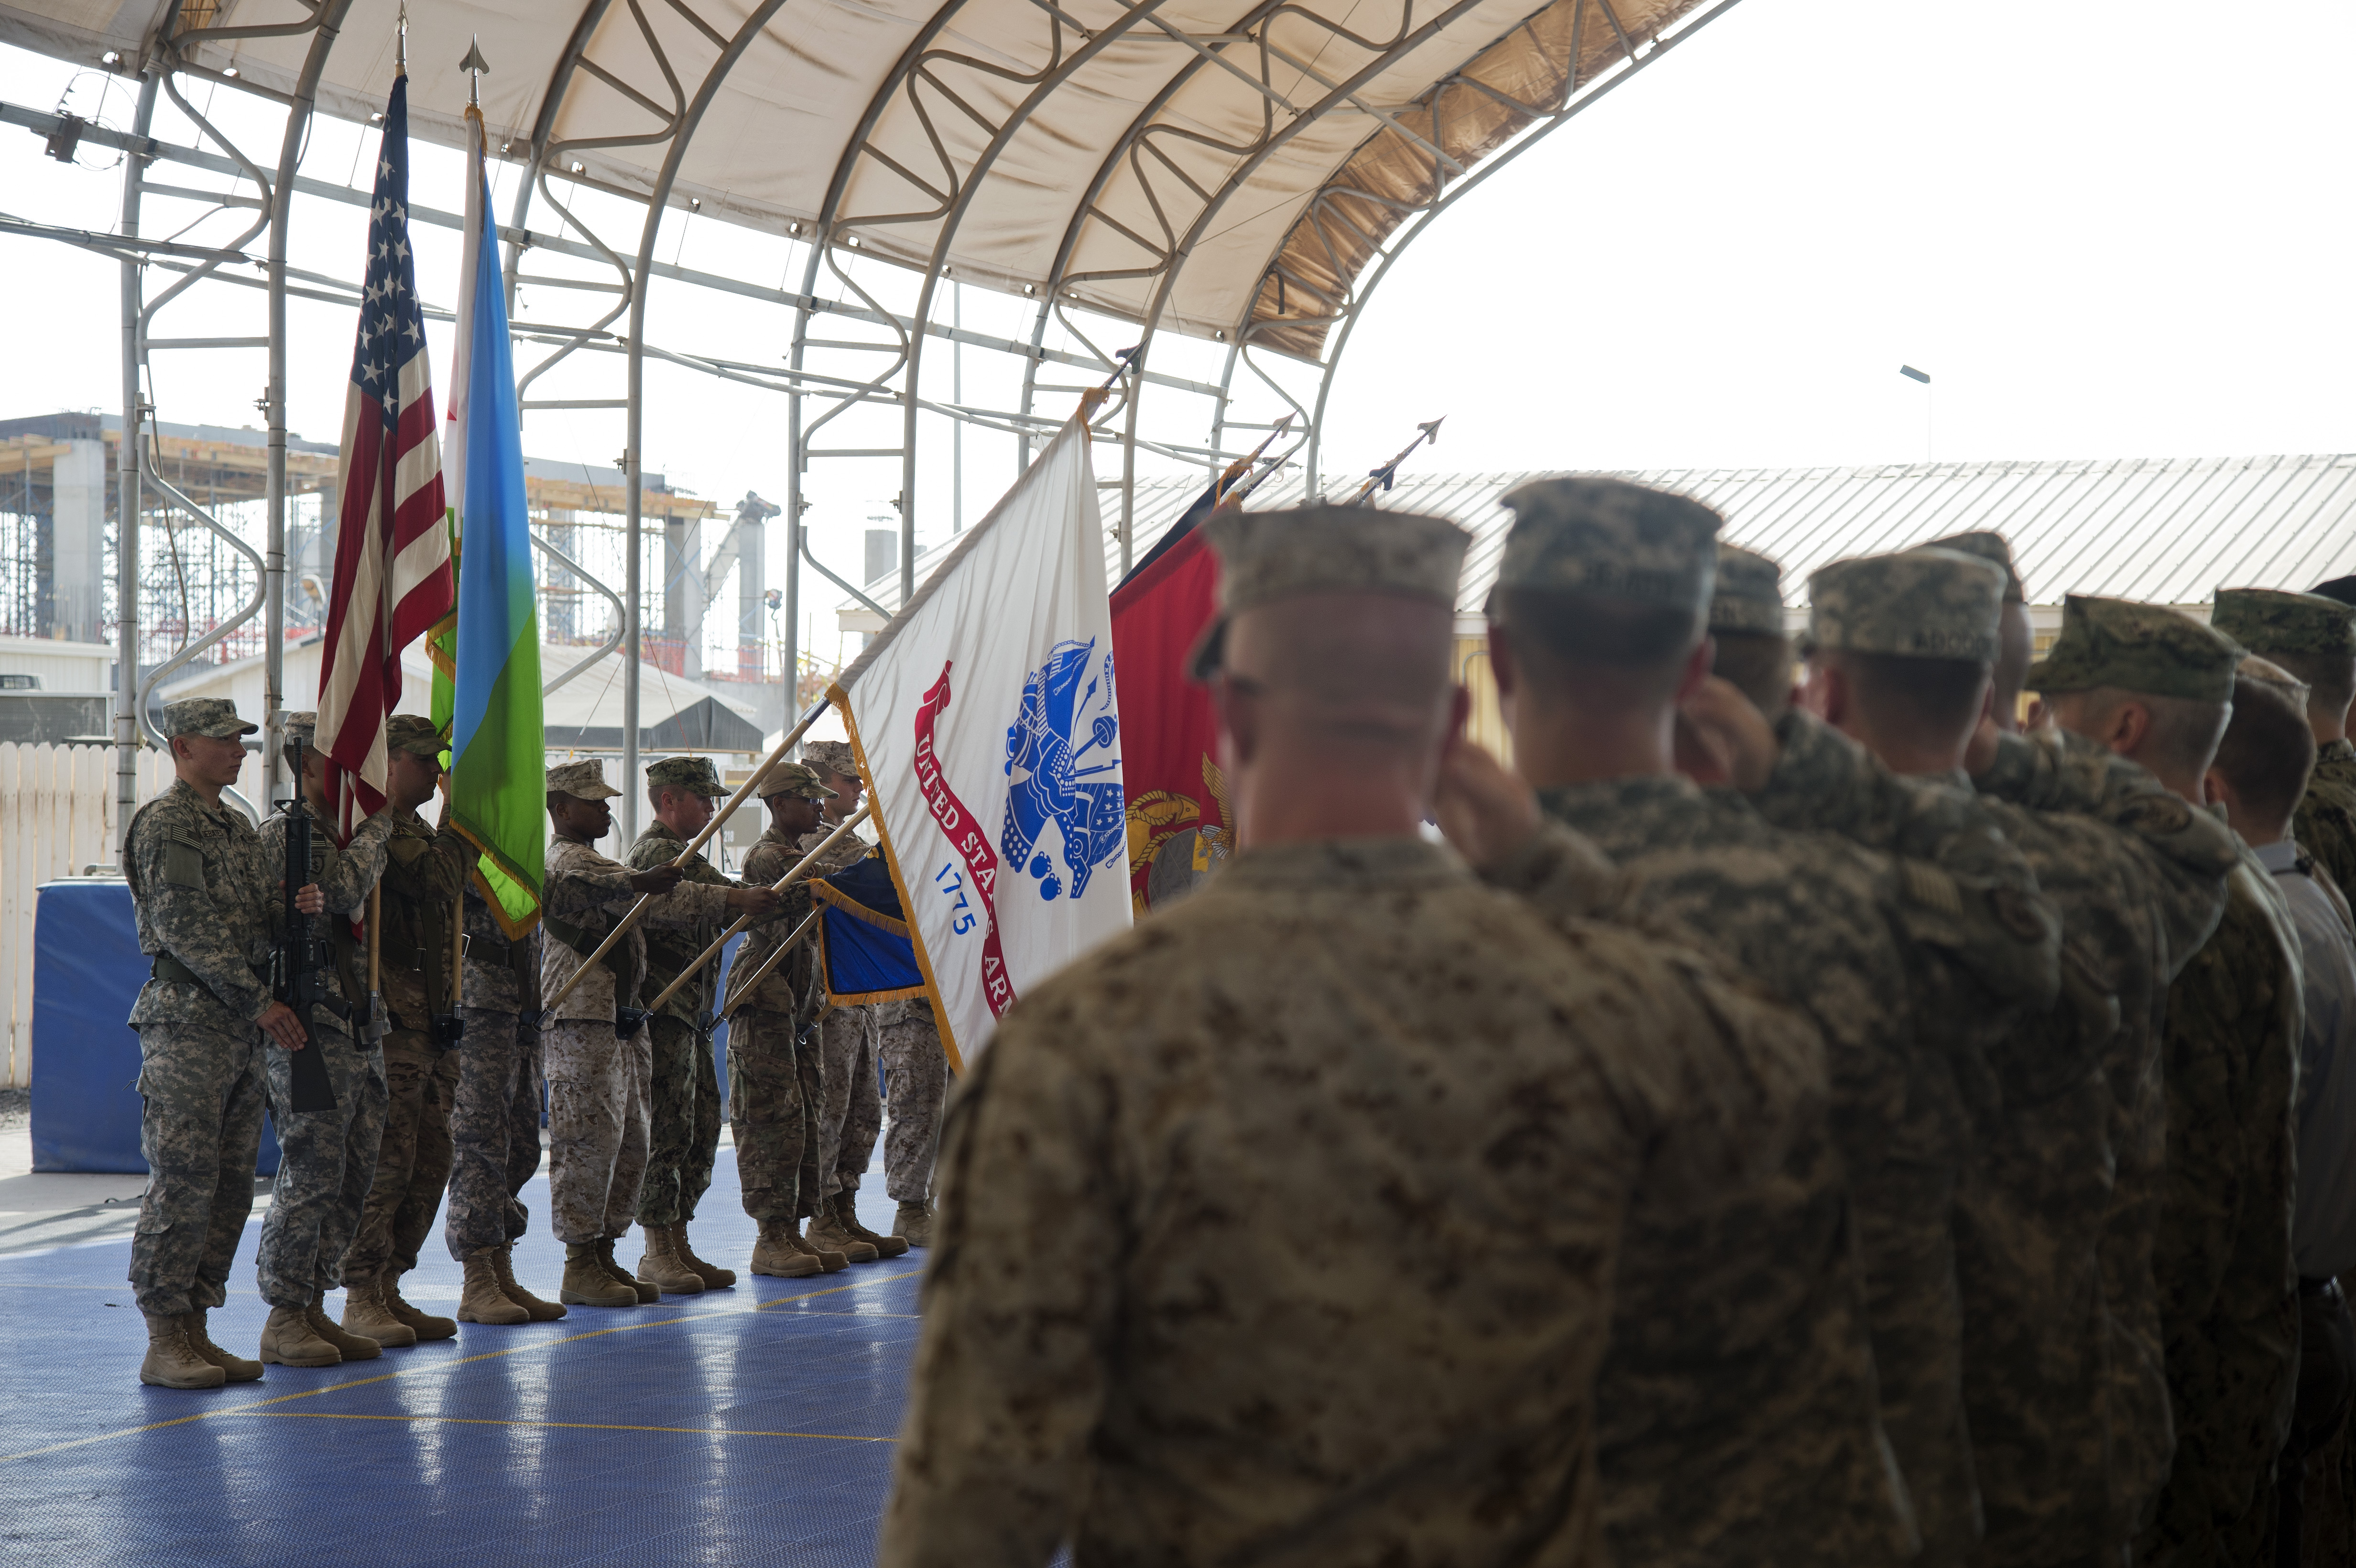 Service members salute the colors during a Memorial Day Ceremony at Combined Joint Task Force-Horn of Africa, Djibouti, May 25, 2015. (U.S. Air Force photo by Staff Sgt. Nathan Maysonet)